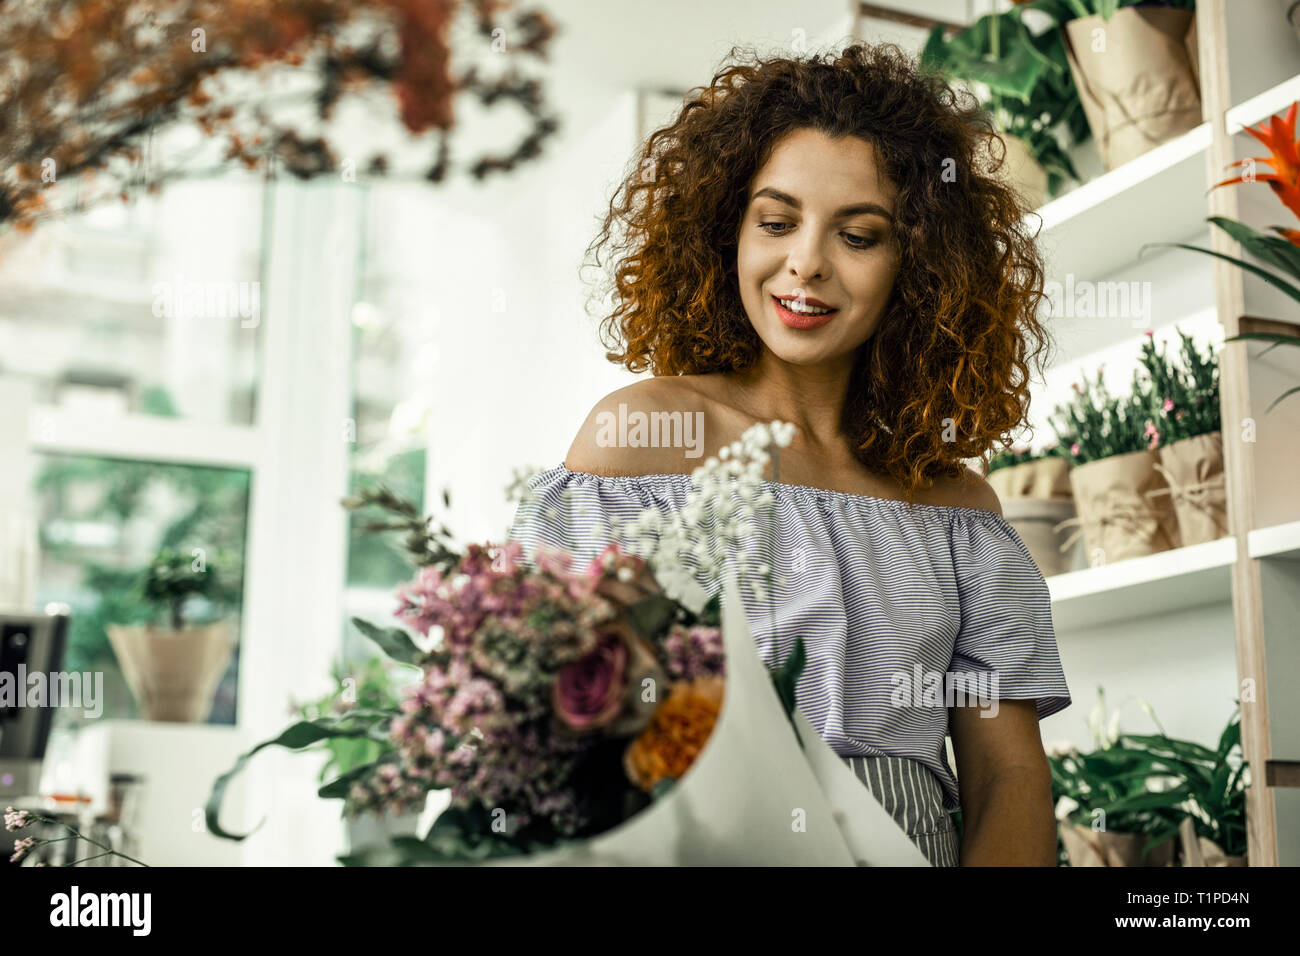 Curly florist feeling satisfied while looking at nice perfect bouquet - Stock Image